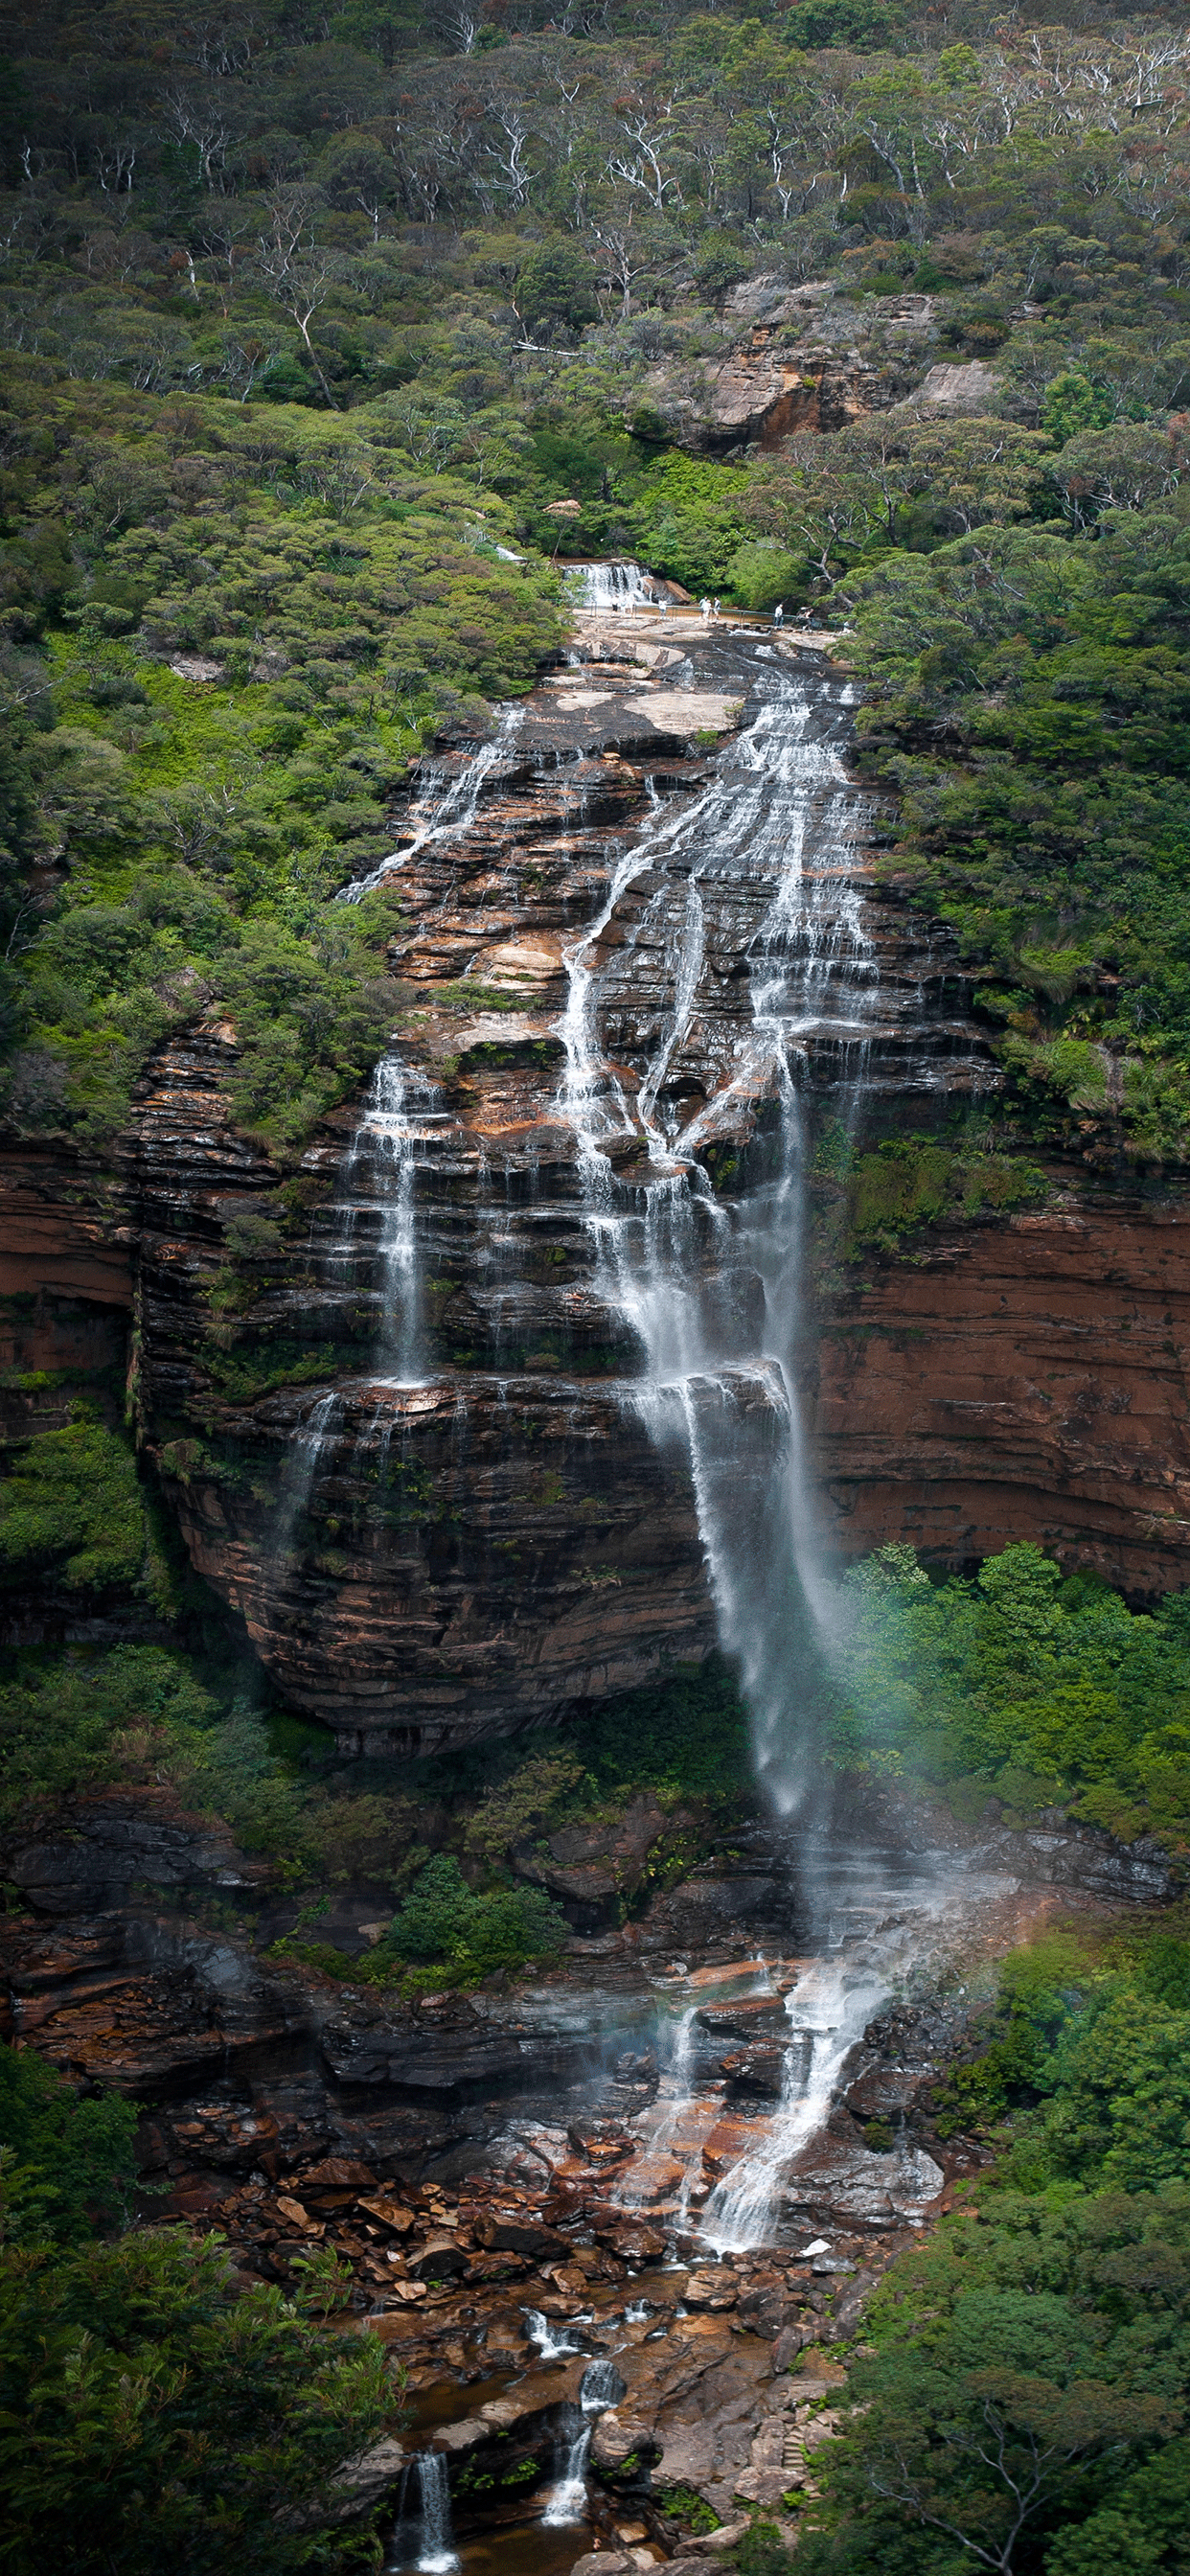 iPhone wallpaper australia wentworth falls Fonds d'écran iPhone du 22/02/2019